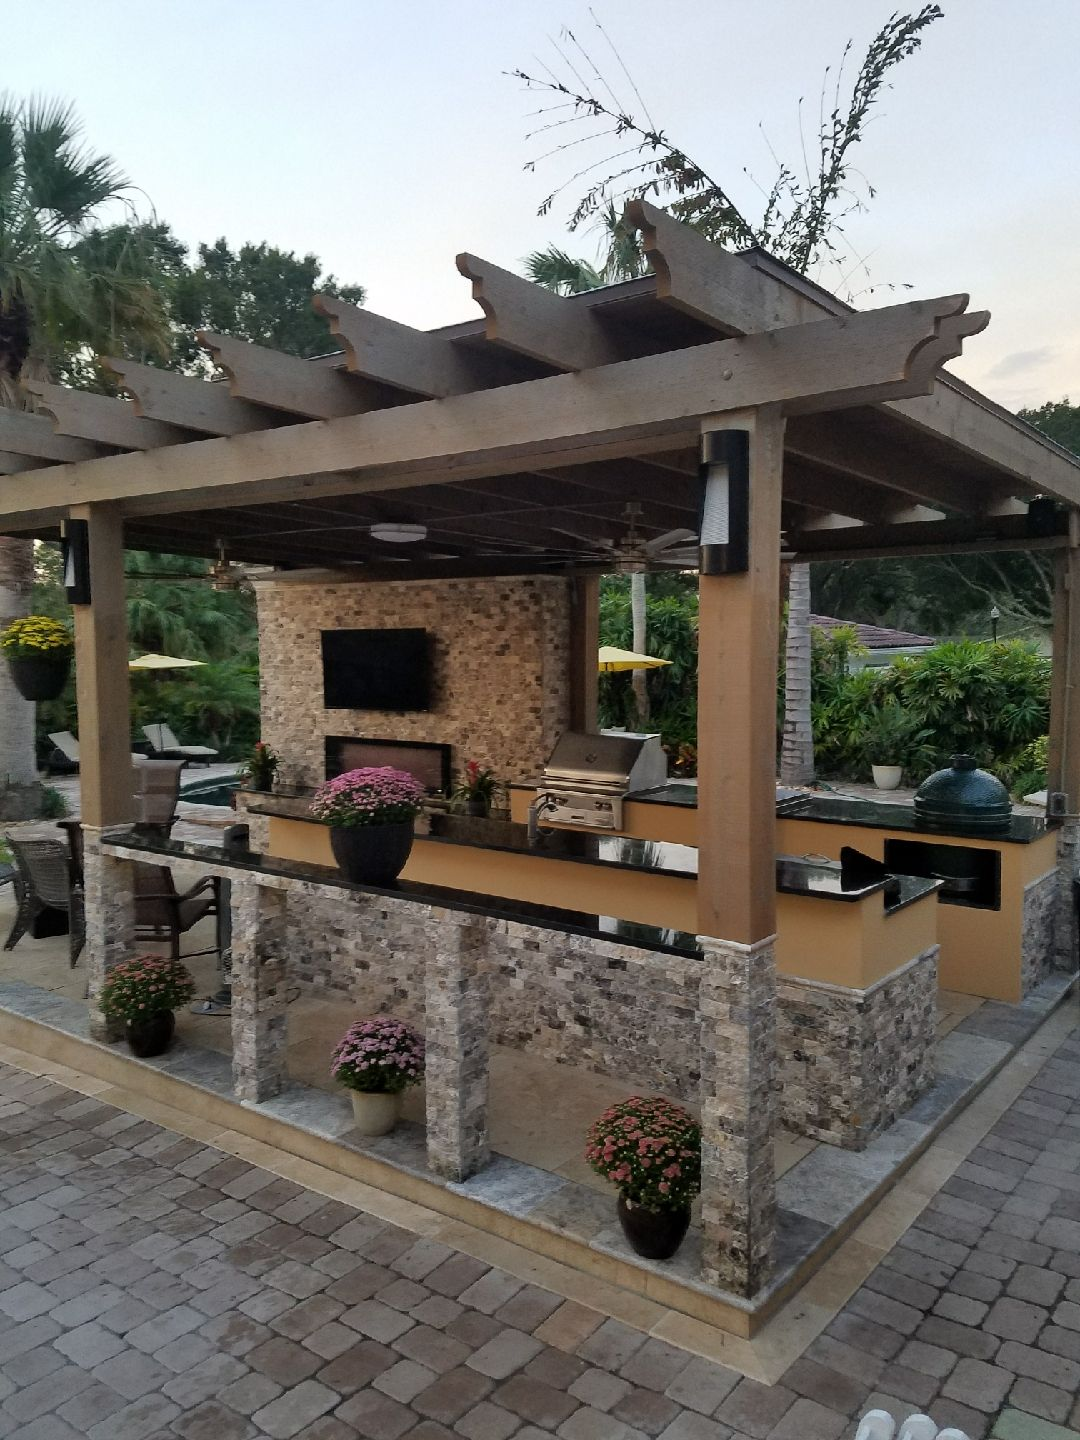 Outdoor Kitchen Frame Made By Dewitt Business Llc We Can Help You To Build Your Outdoor Kitchen Drea Outdoor Kitchen Decor Outdoor Kitchen Patio Patio Design